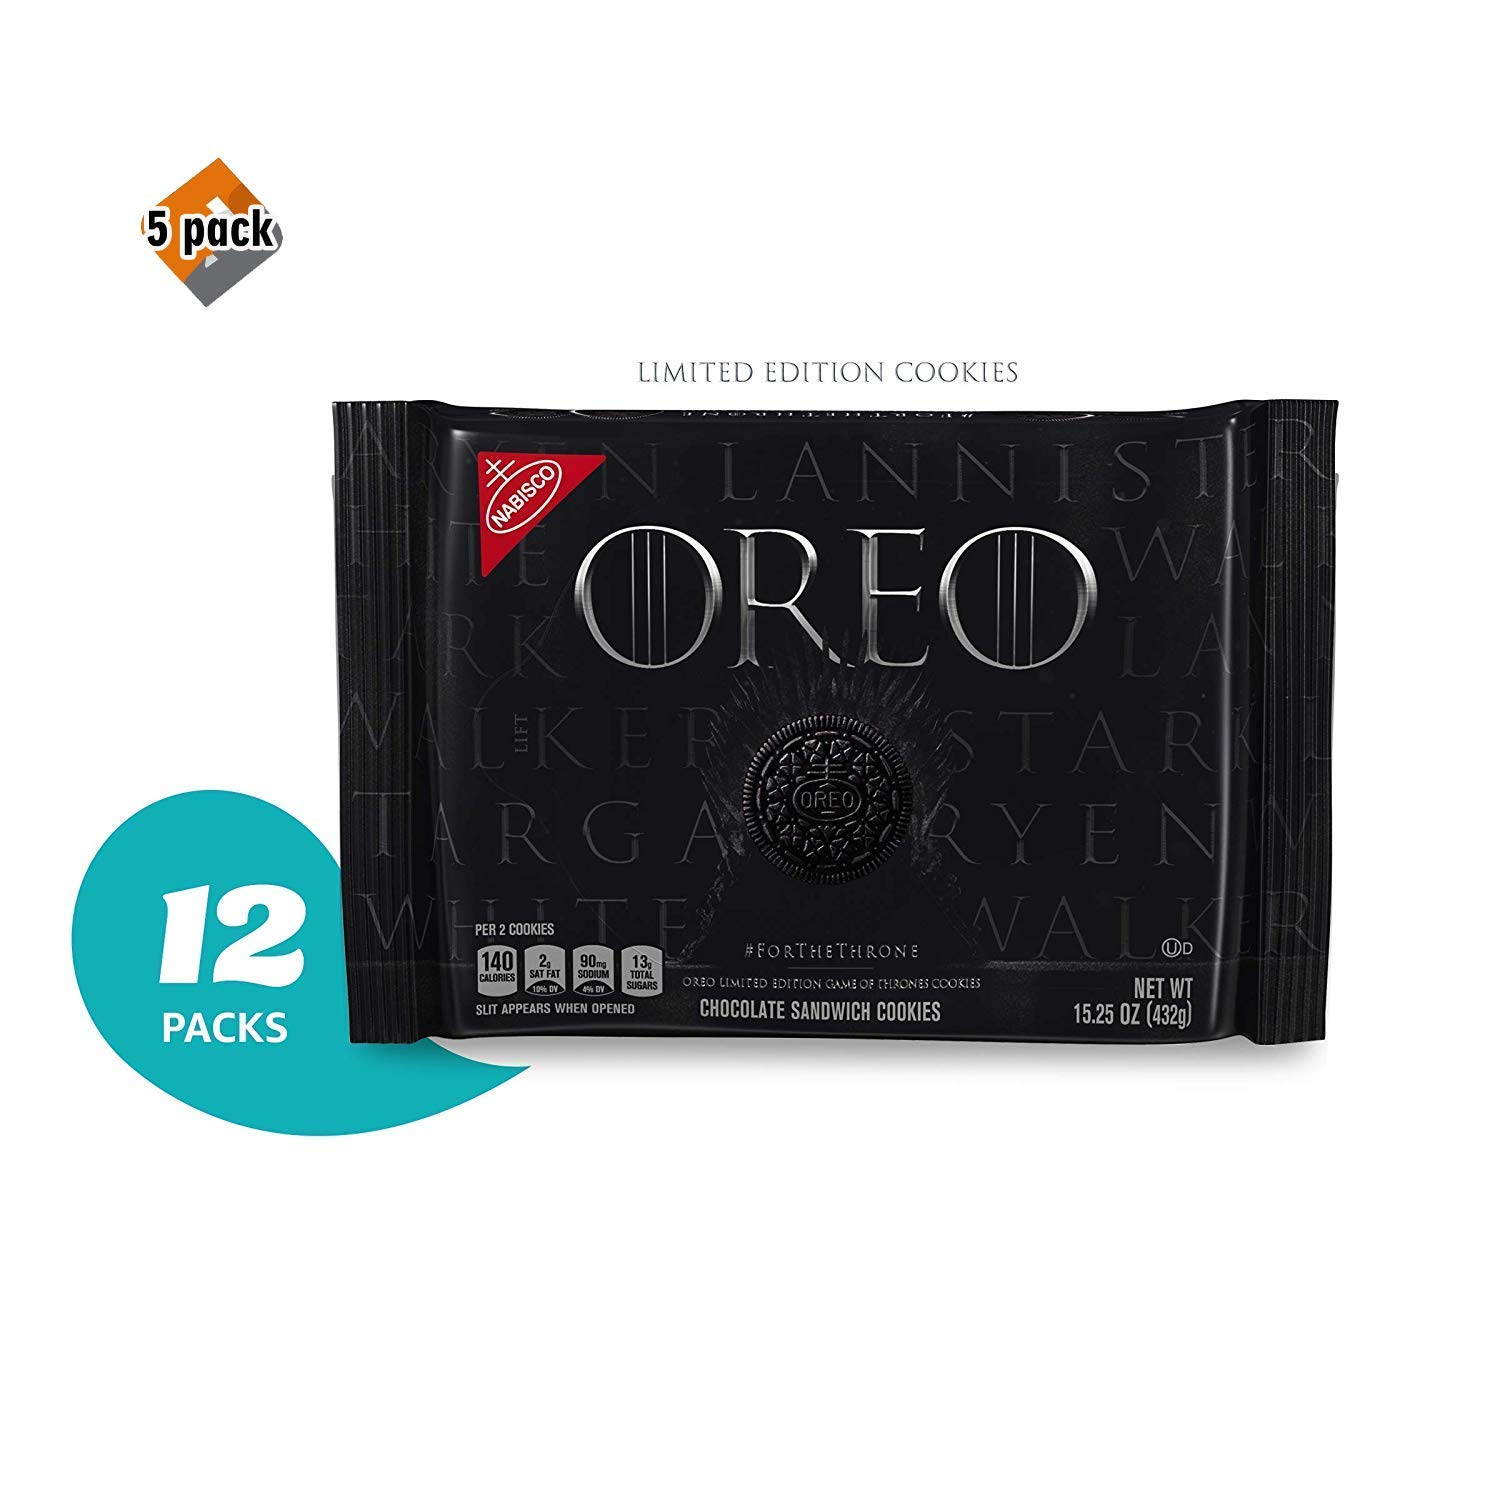 OREO Limited Edition Game of Thrones Themed Classic Chocolate Sandwich Cookies (Pack of 12) 5 Pack